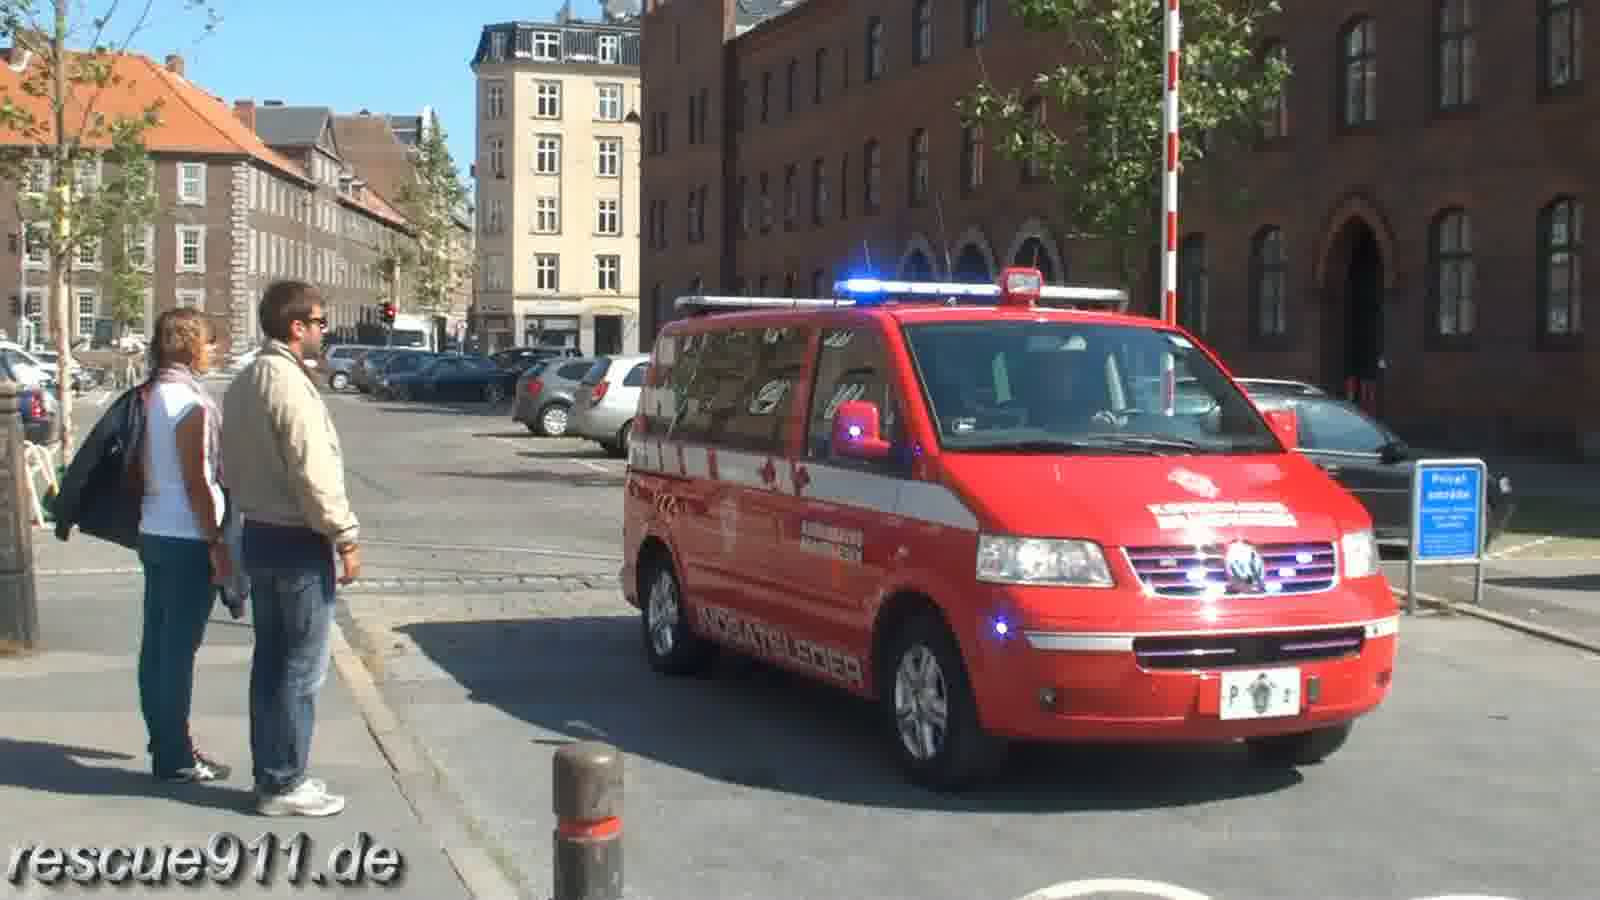 Command vehicle P2 Kobenhavns Brandvaesen (stream)